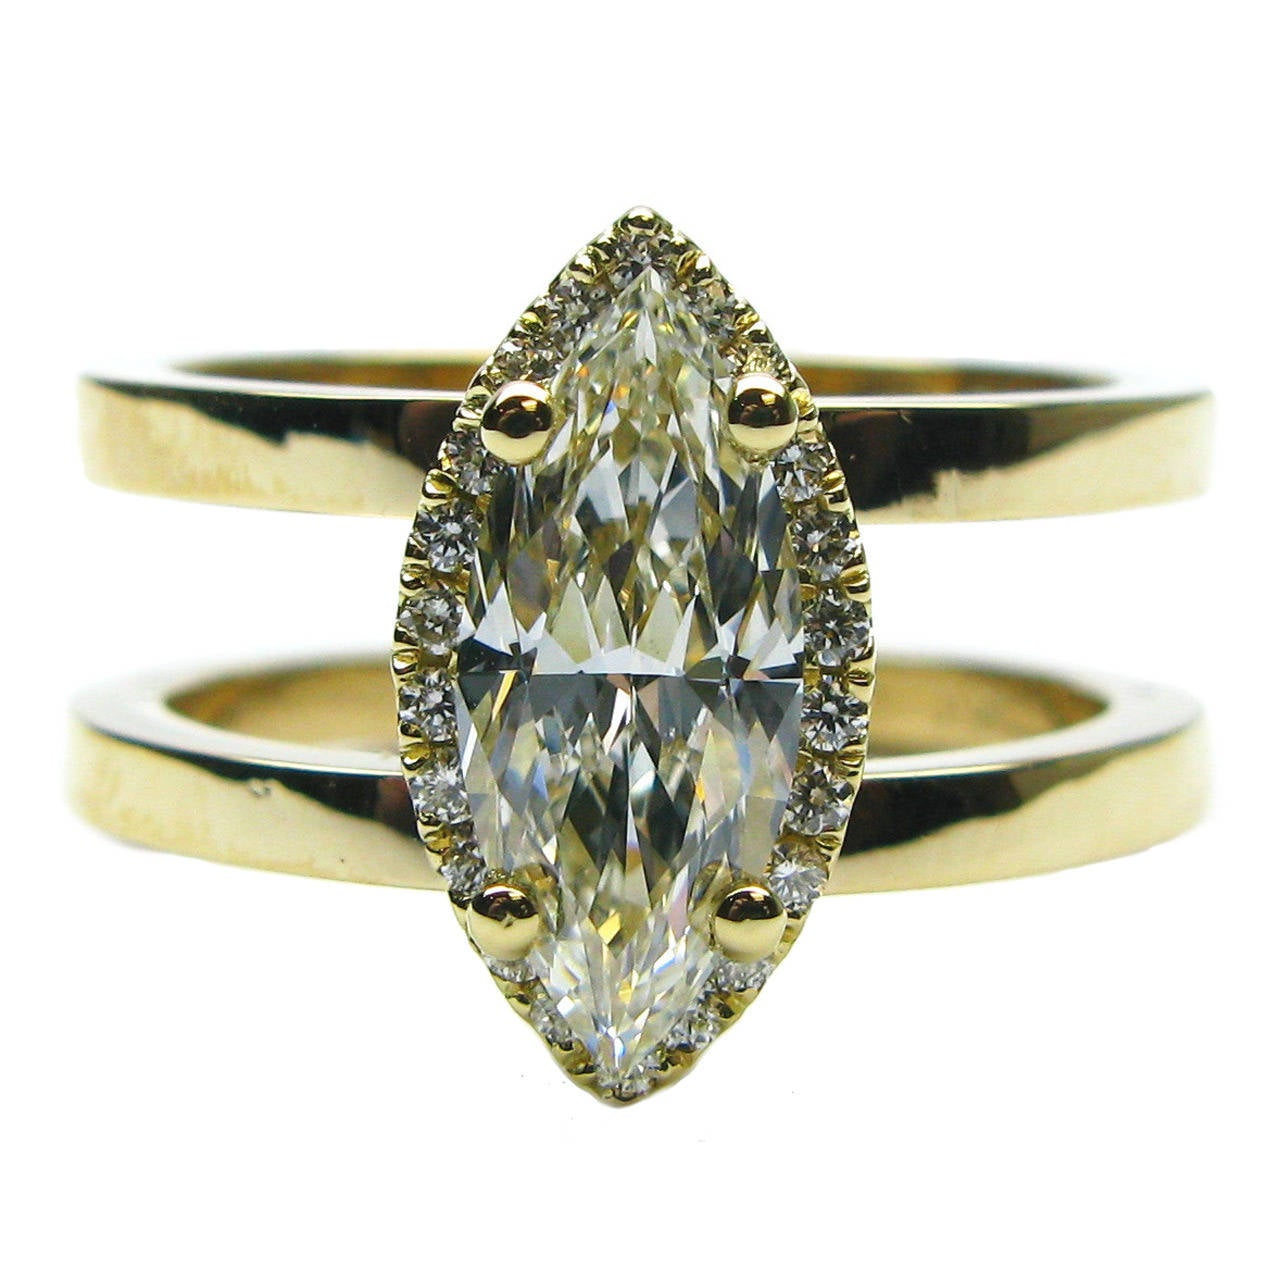 Large Double Ring Chandelier At 1stdibs: 1.08 Carat Marquise Diamond Frame Double Band Ring At 1stdibs